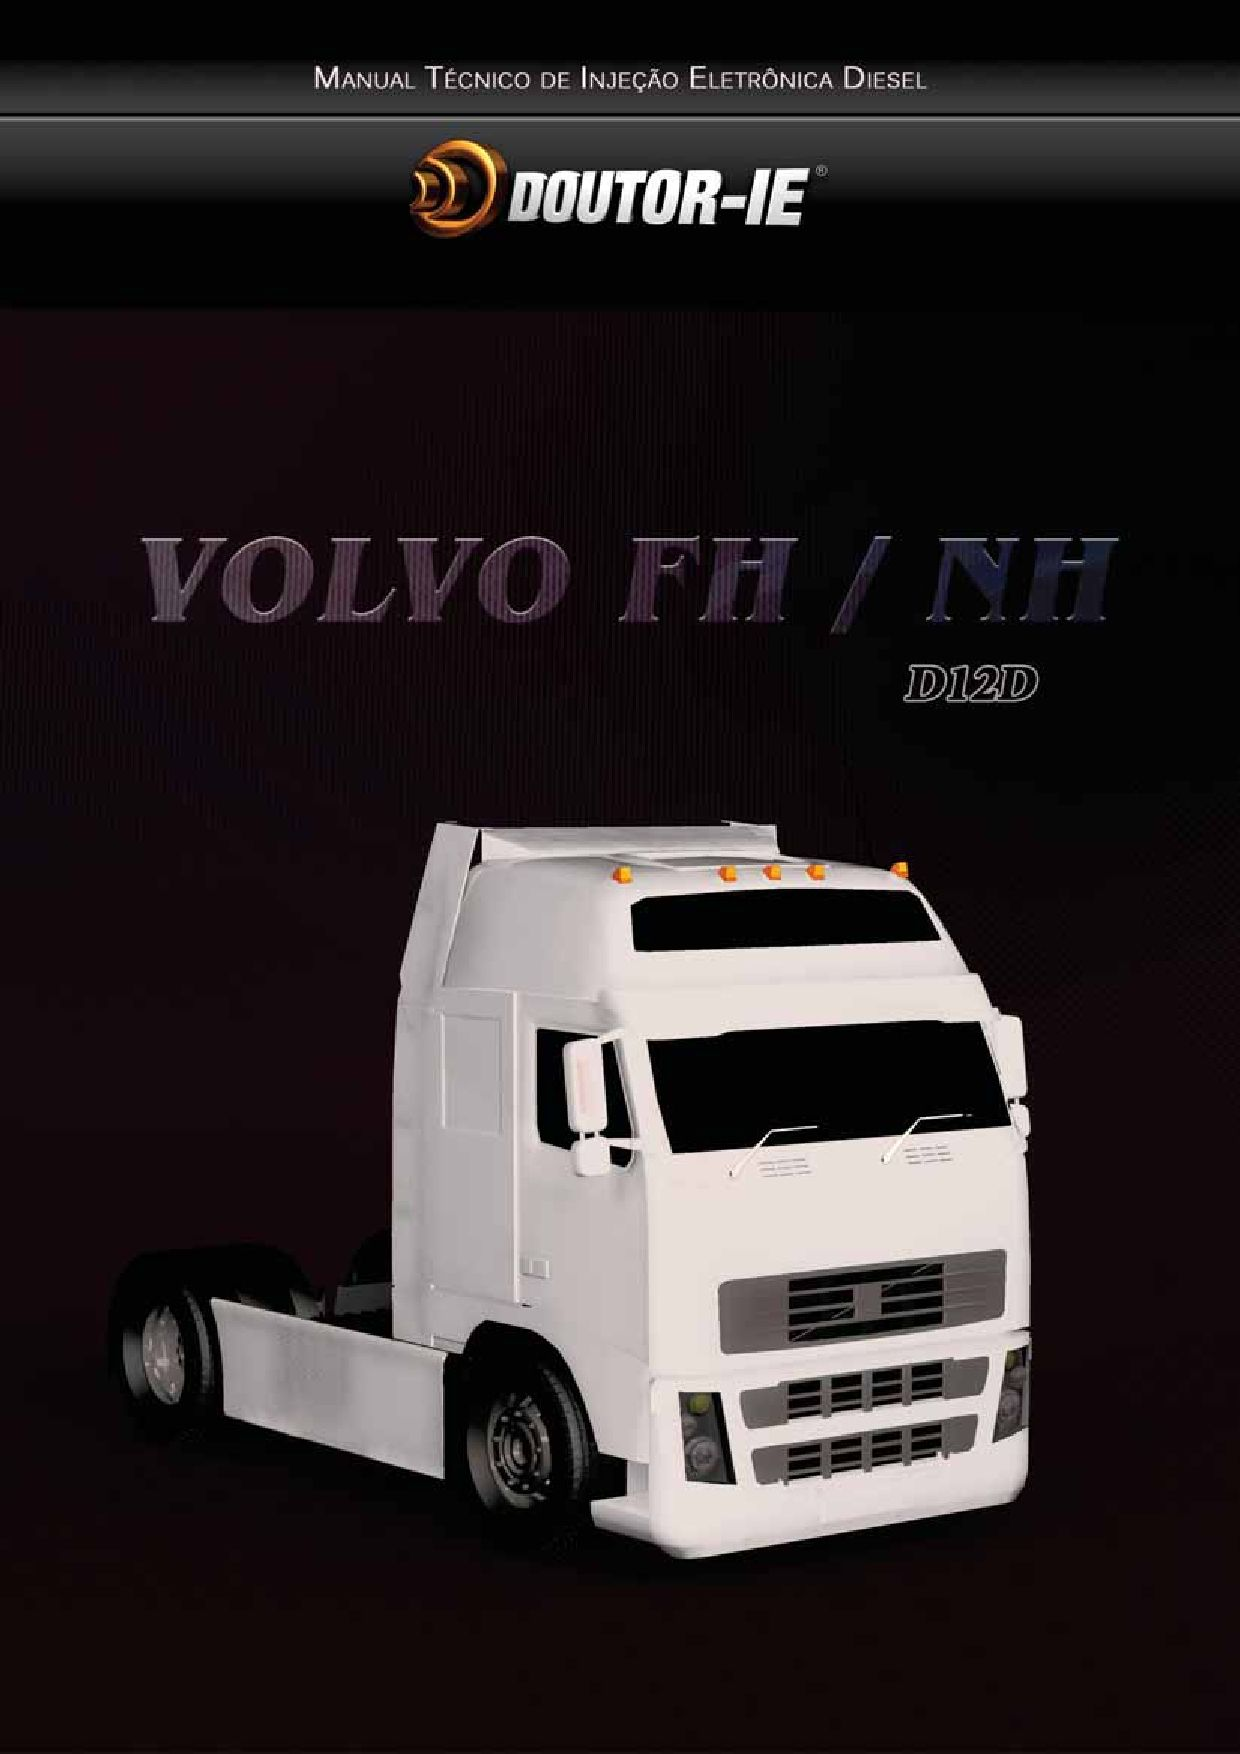 Manual Doutor Ie Volvo Fh12 Pdf Download Service Manual Repair Manual Pdf Download Repair Manuals Volvo Repair And Maintenance